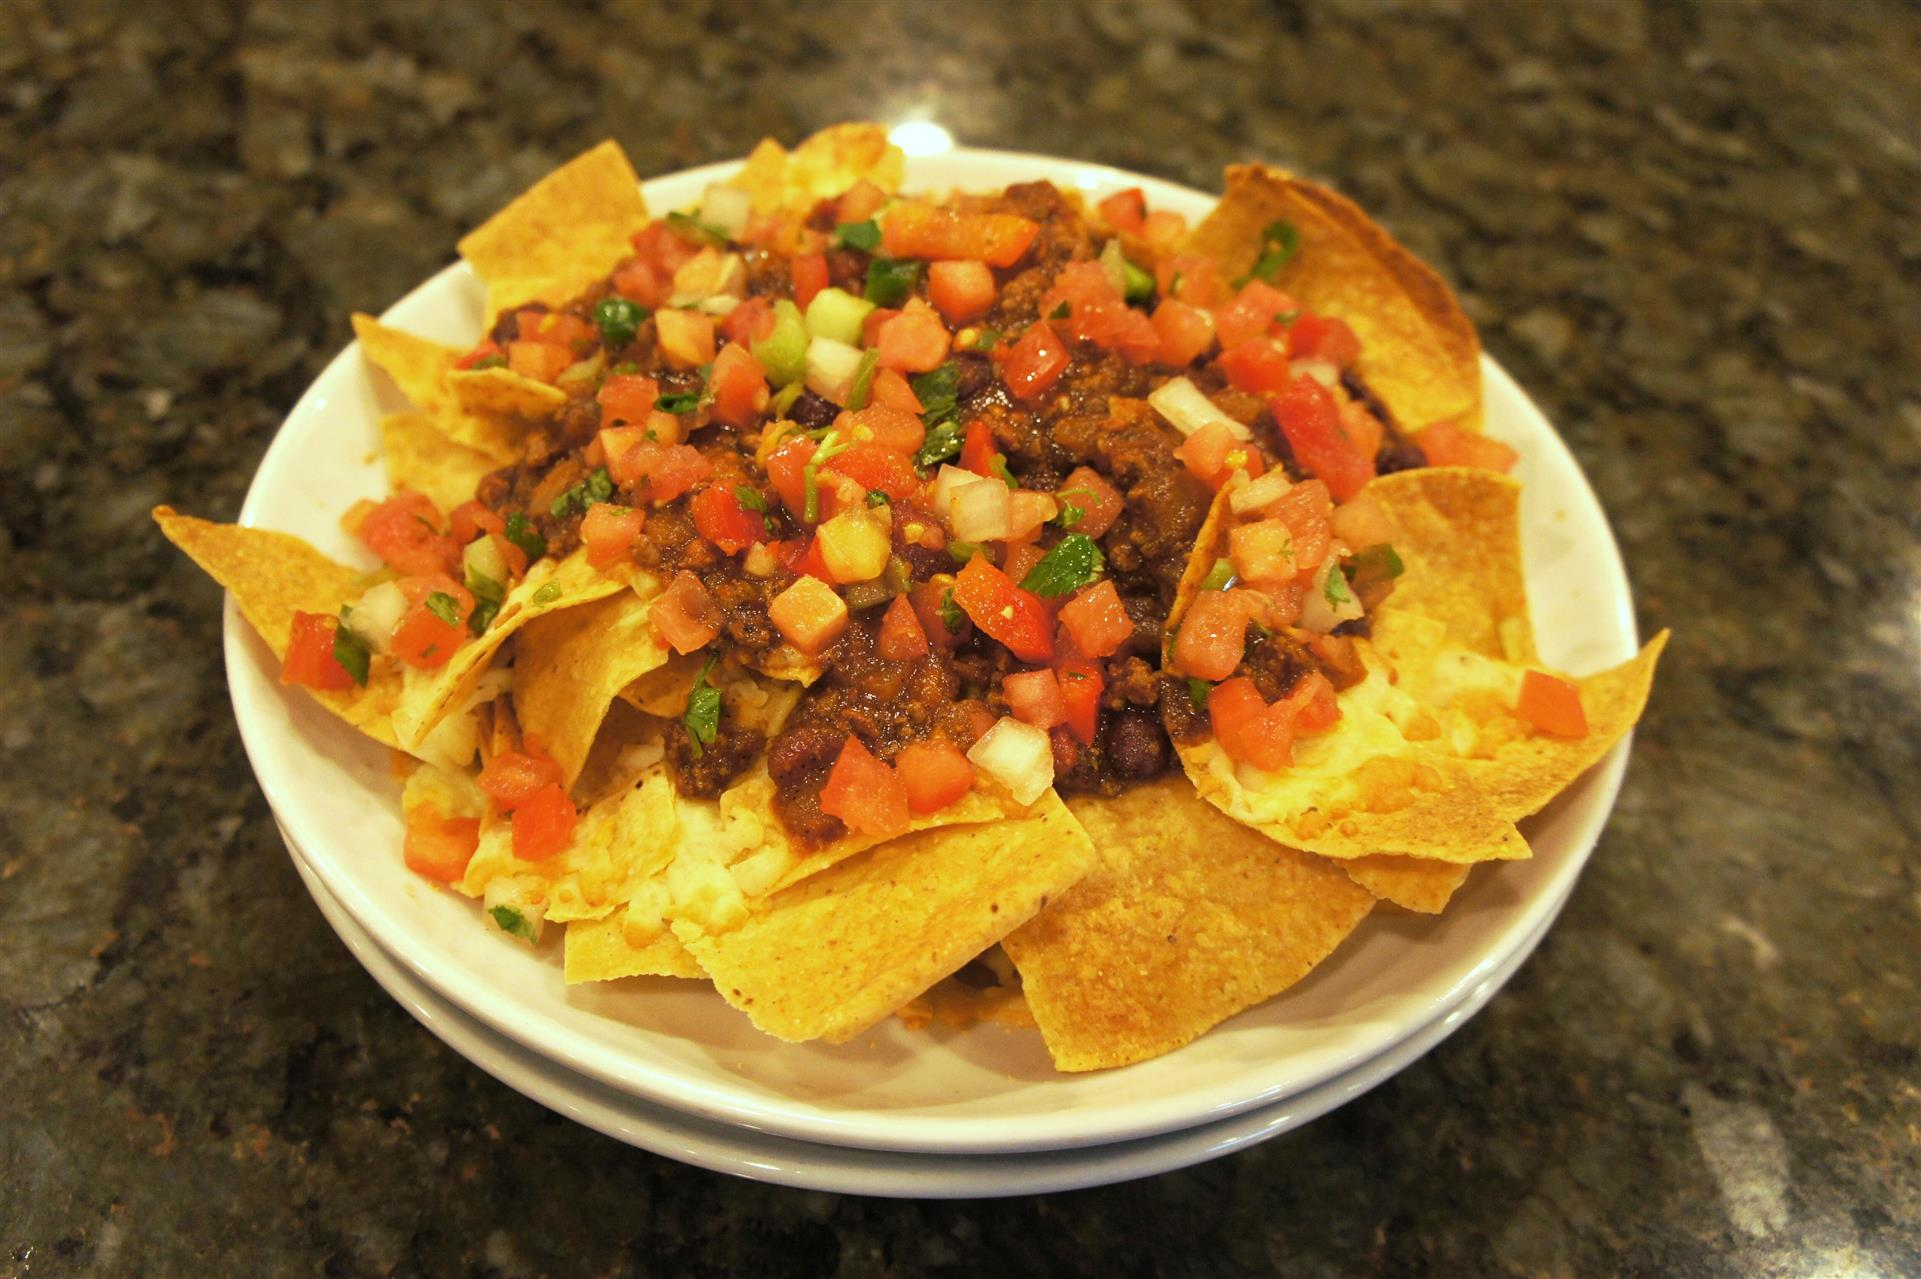 Plate of nachos with diced tomatoes and chopped meat